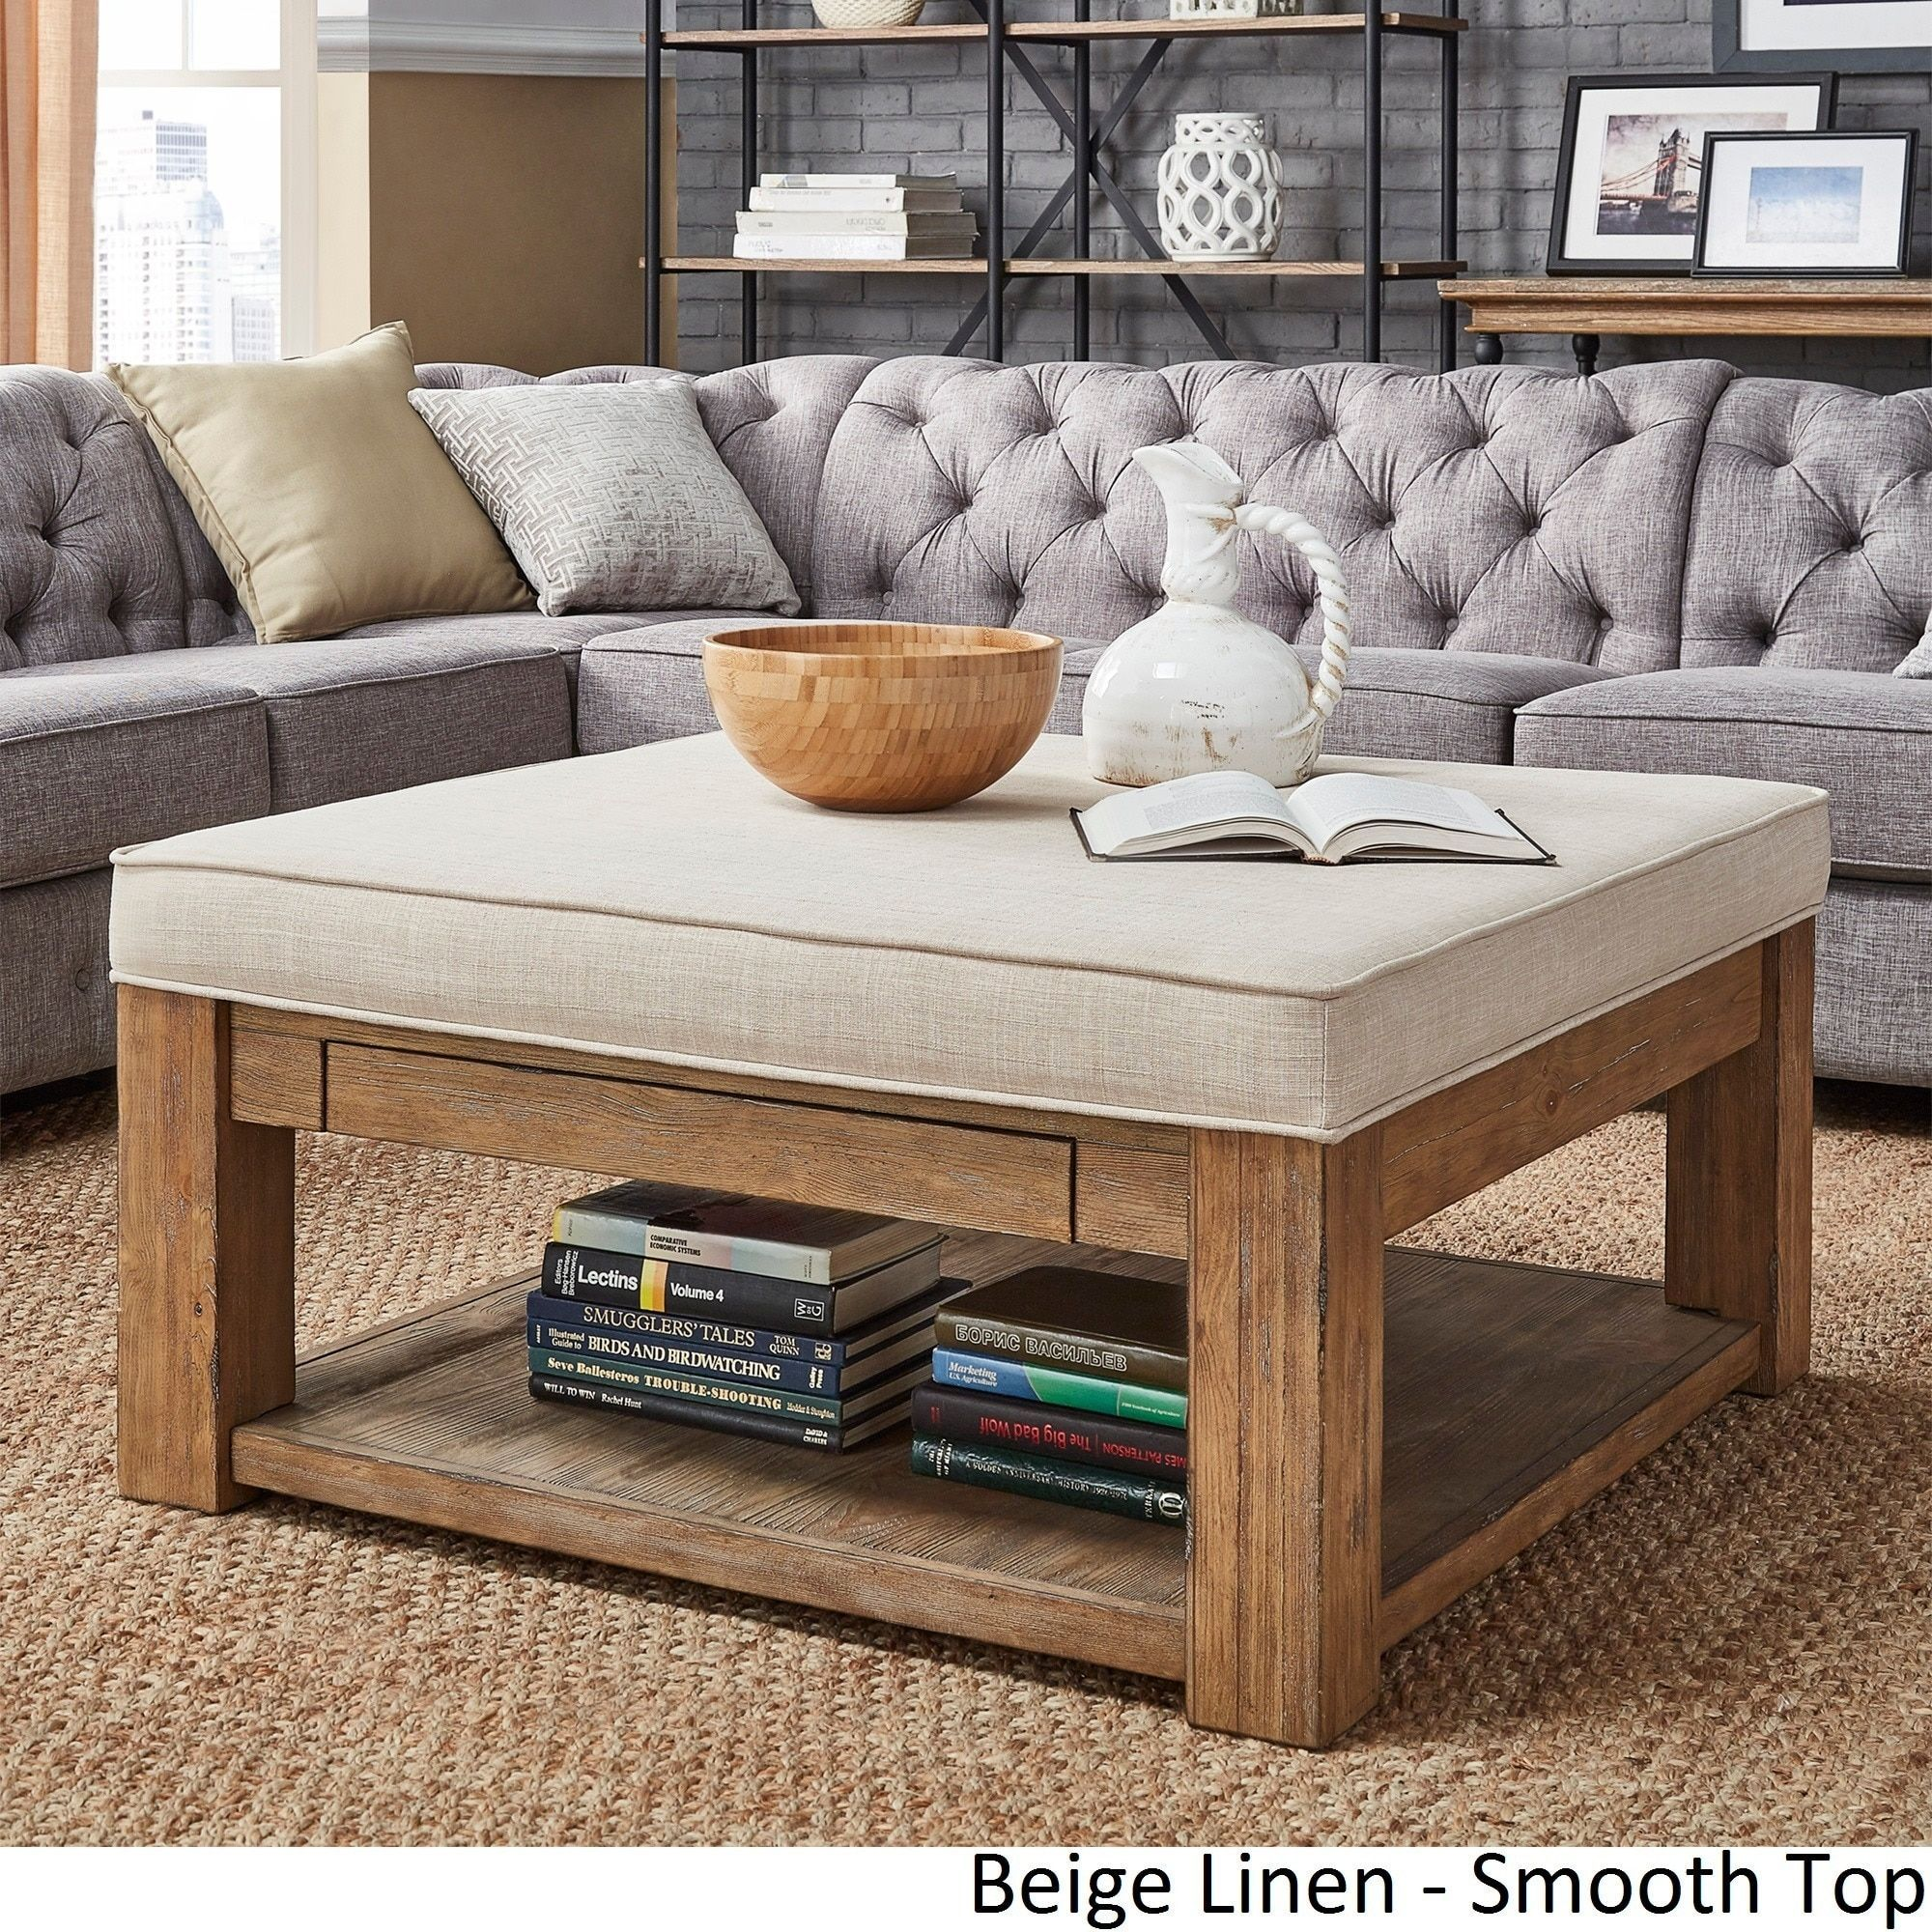 Lennon Pine Square Storage Ottoman Coffee Table by iNSPIRE Q Artisan by  iNSPIRE Q